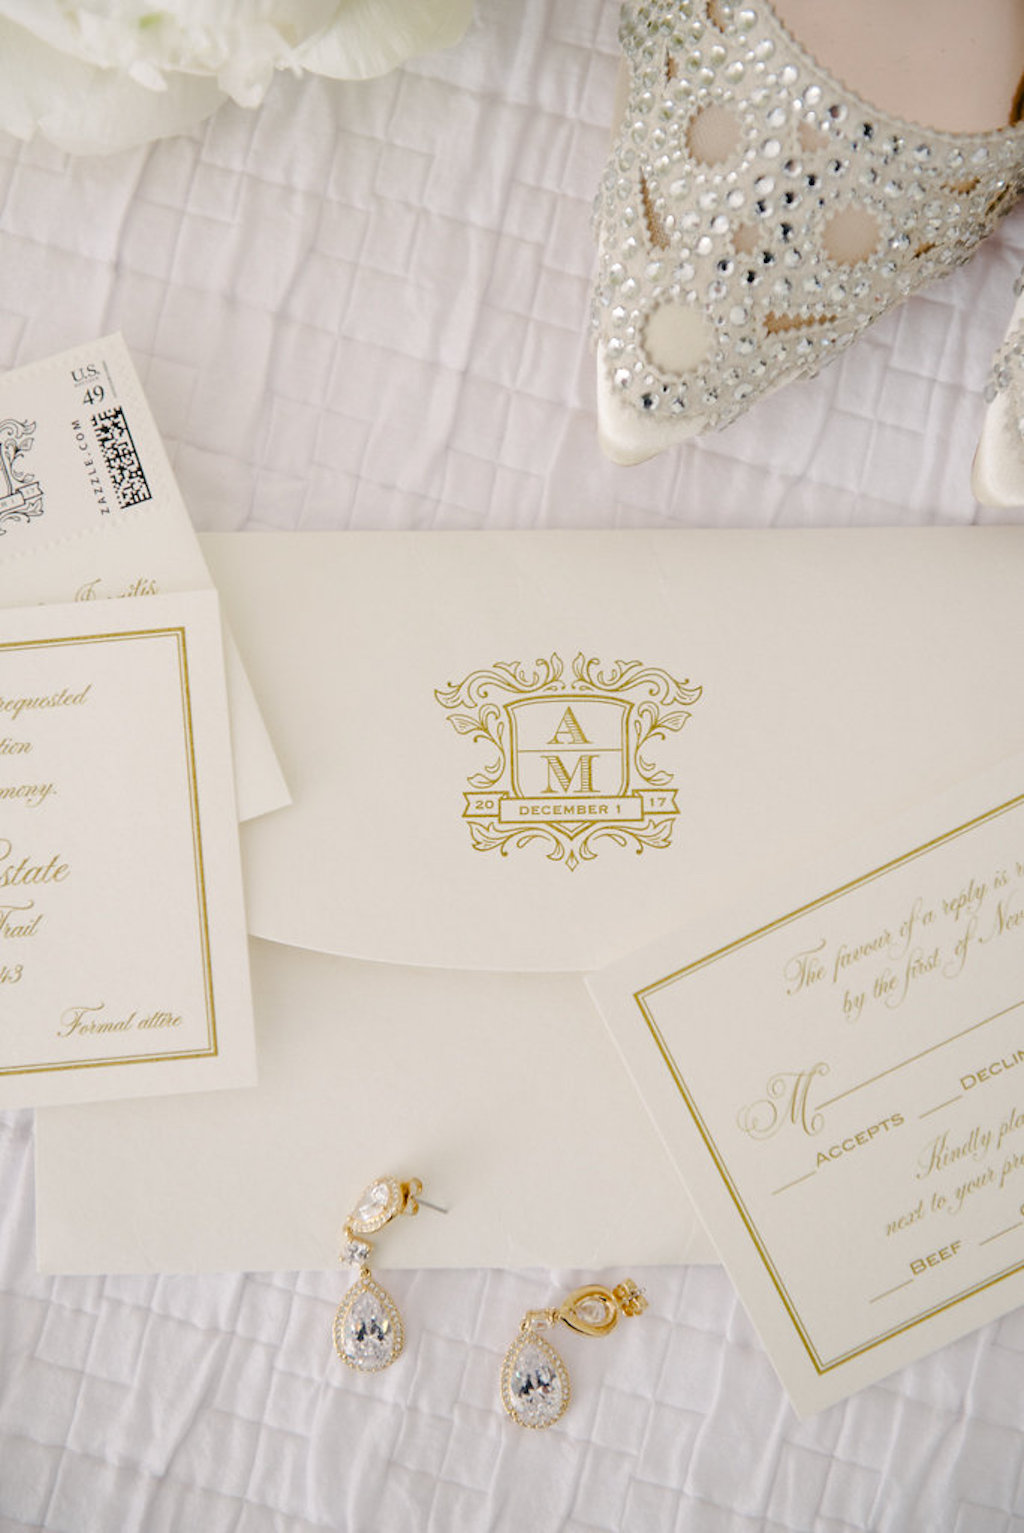 White and Gold Elegant Wedding invitation Suite with Custom Monogram, Drop Blue and Rhinestone Gold Earrings and Pointed Toe Wedding Shoes | Tampa Bay Wedding Stationery and Paper Goods URBANcoast